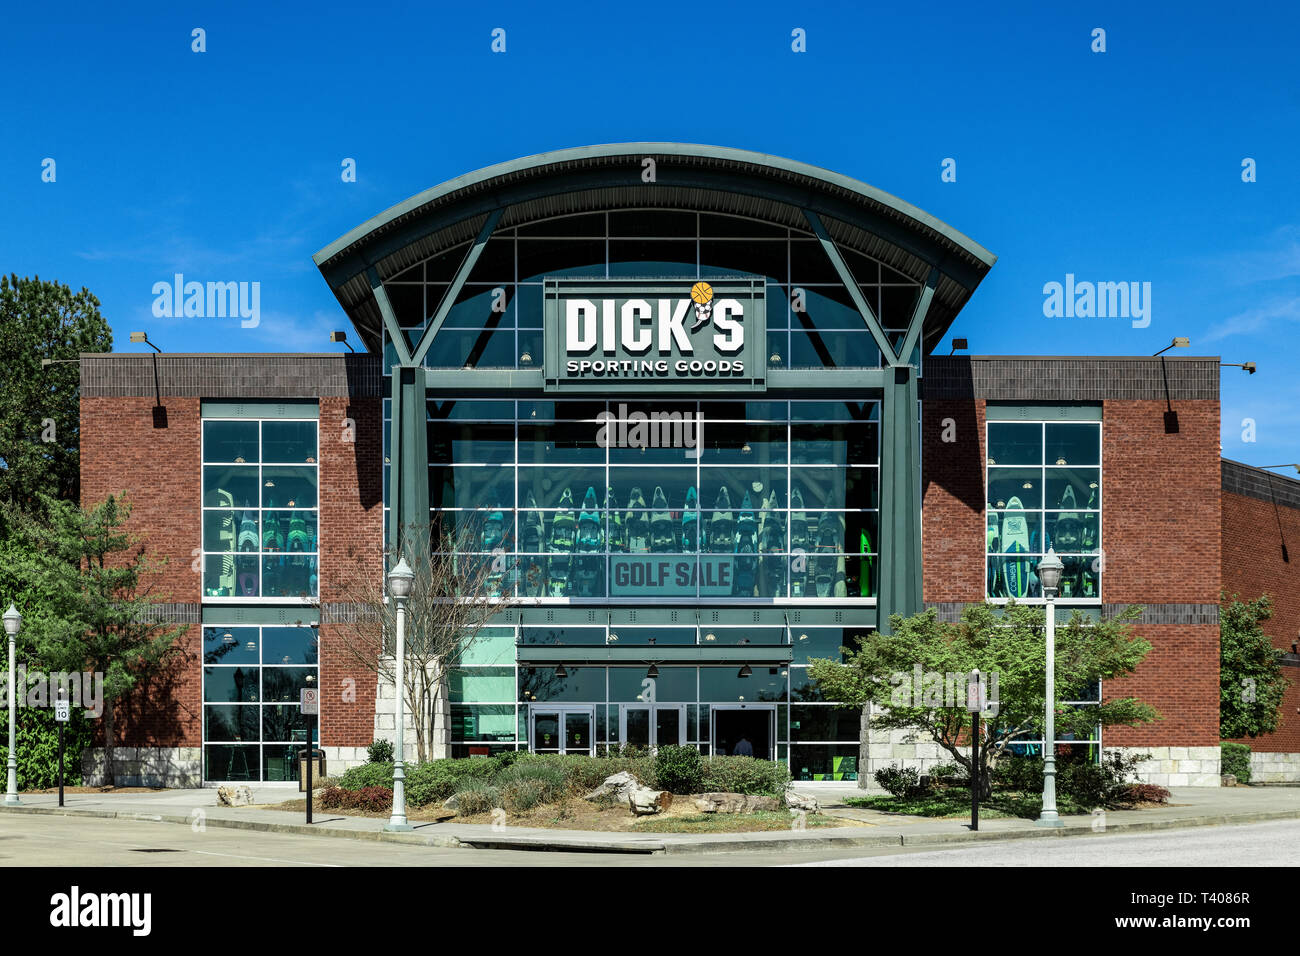 finest selection 46fe4 bd52c Dick's Sporting Goods Store Stock Photos & Dick's Sporting ...